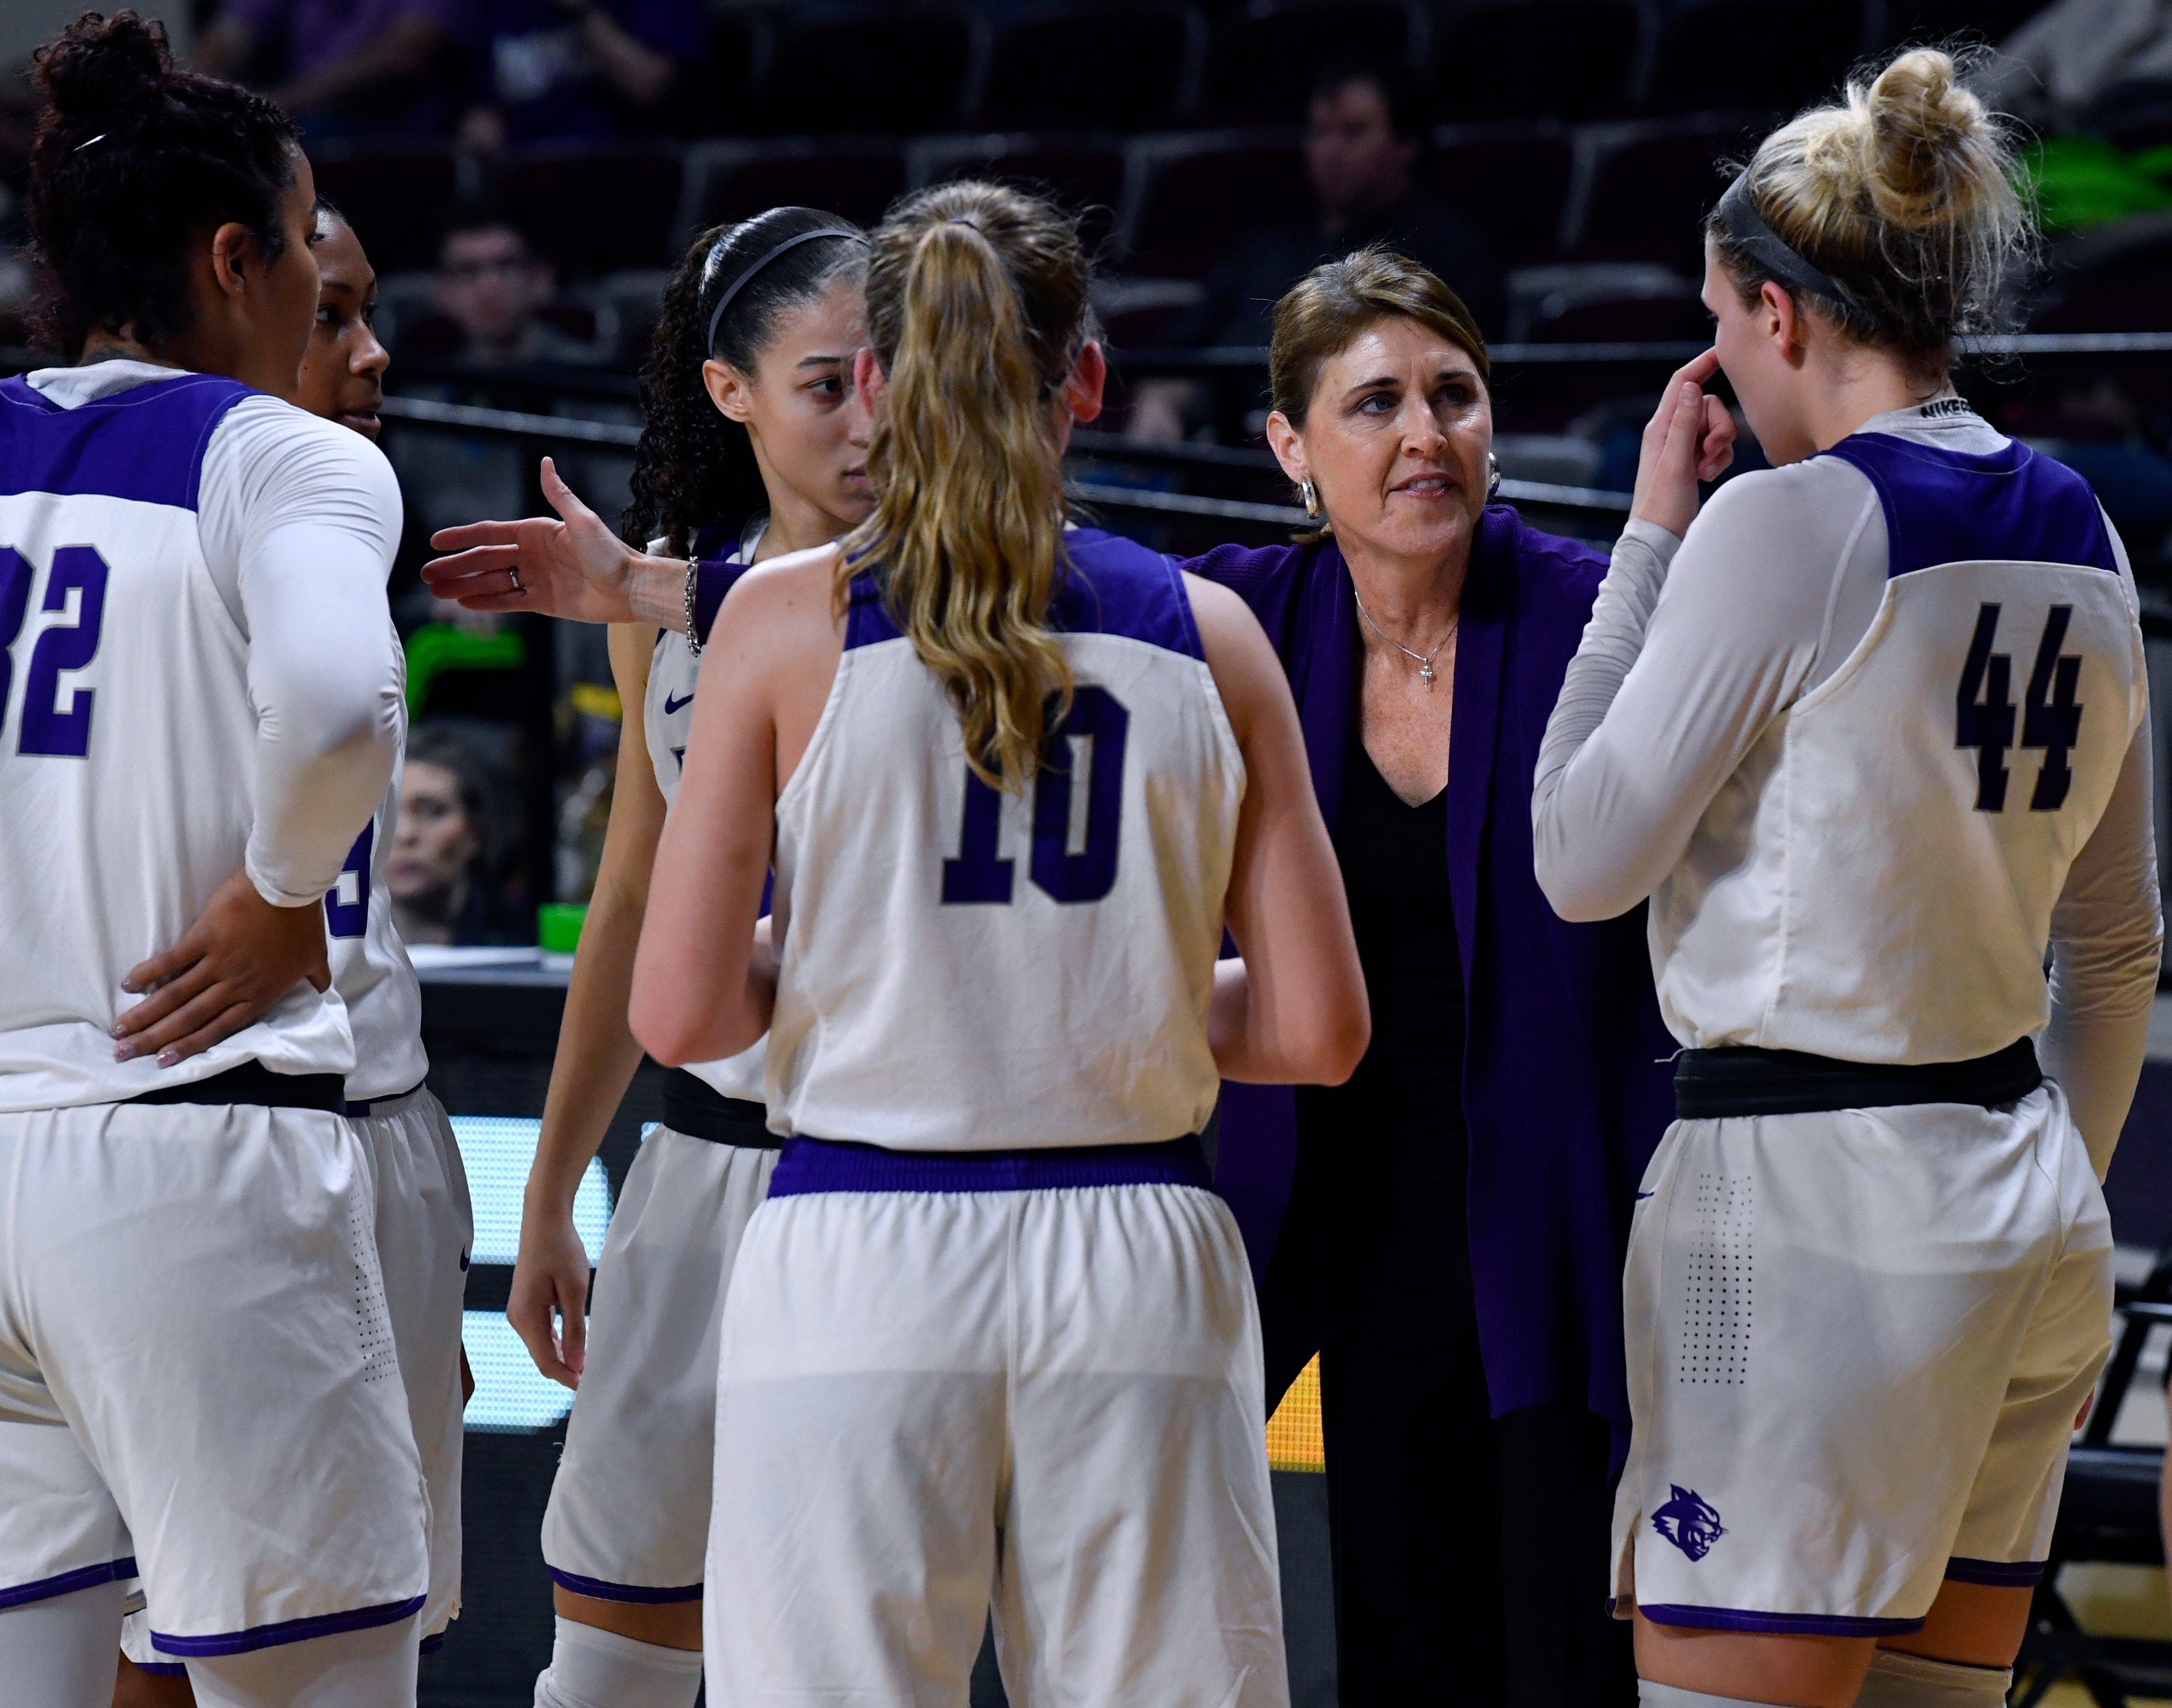 Abilene Christian University coach Julie Goodenough has led her team to three 20-win seasons the past four years.